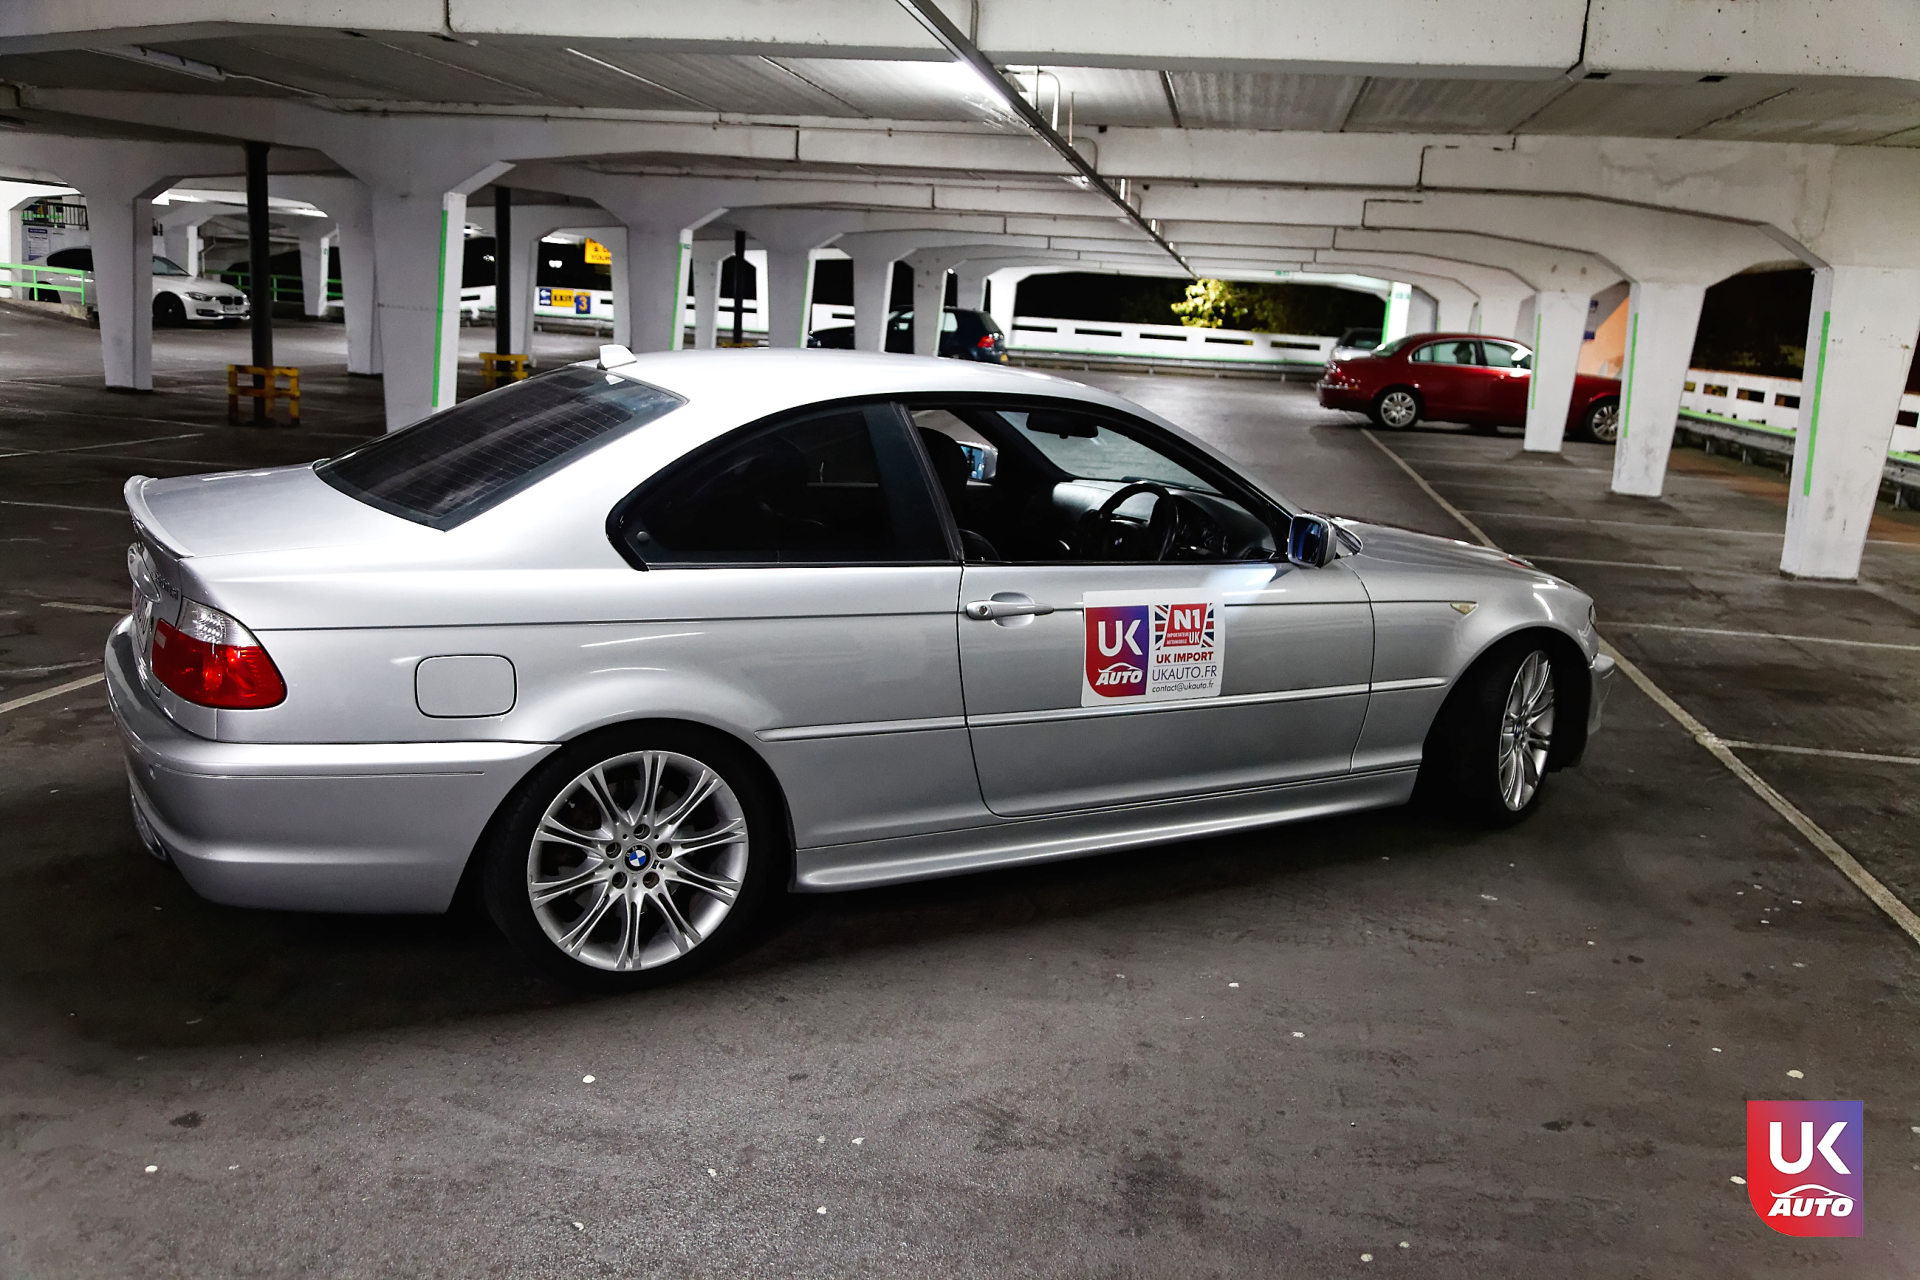 Bmw 330ci e46 import voiture anglaise bmw angleterre ukauto mandataire angleterre bmw 330ci rhd4 DxO - MANDATAIRE BMW IMPORT BMW 330CI PAR UKAUTO IMPORT BMW ANGLETERRE PAS CHER FELICITATION A THIBAUT